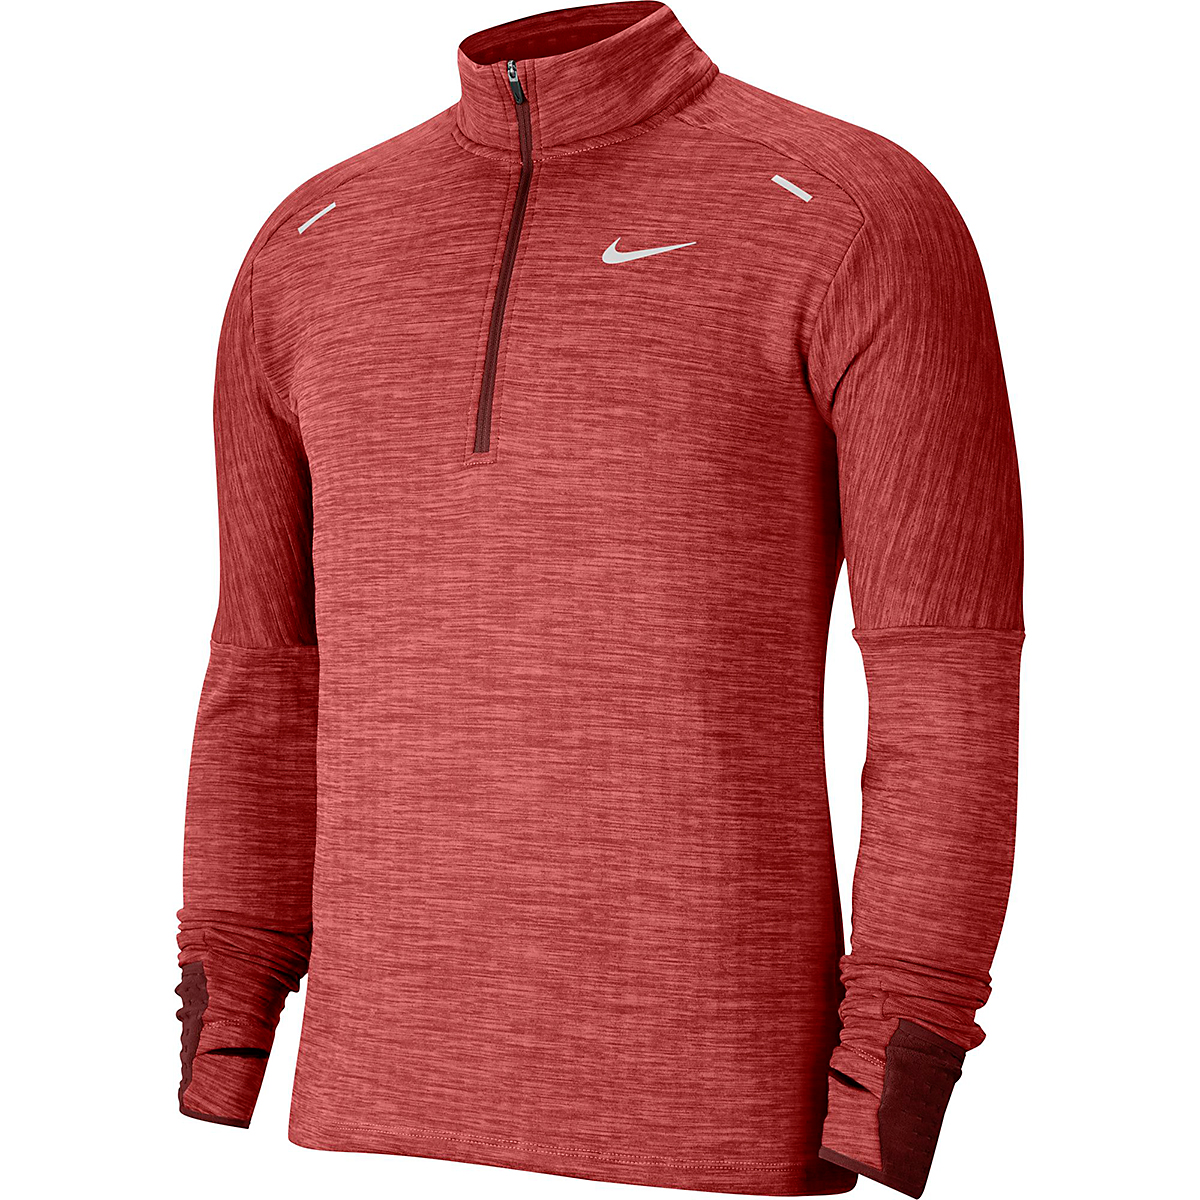 Men's Nike Sphere Half Zip Long Sleeve Shirt - Color: Mystic Dates/Heather/Chile Red - Size: S, Mystic Dates/Heather/Chile Red, large, image 3